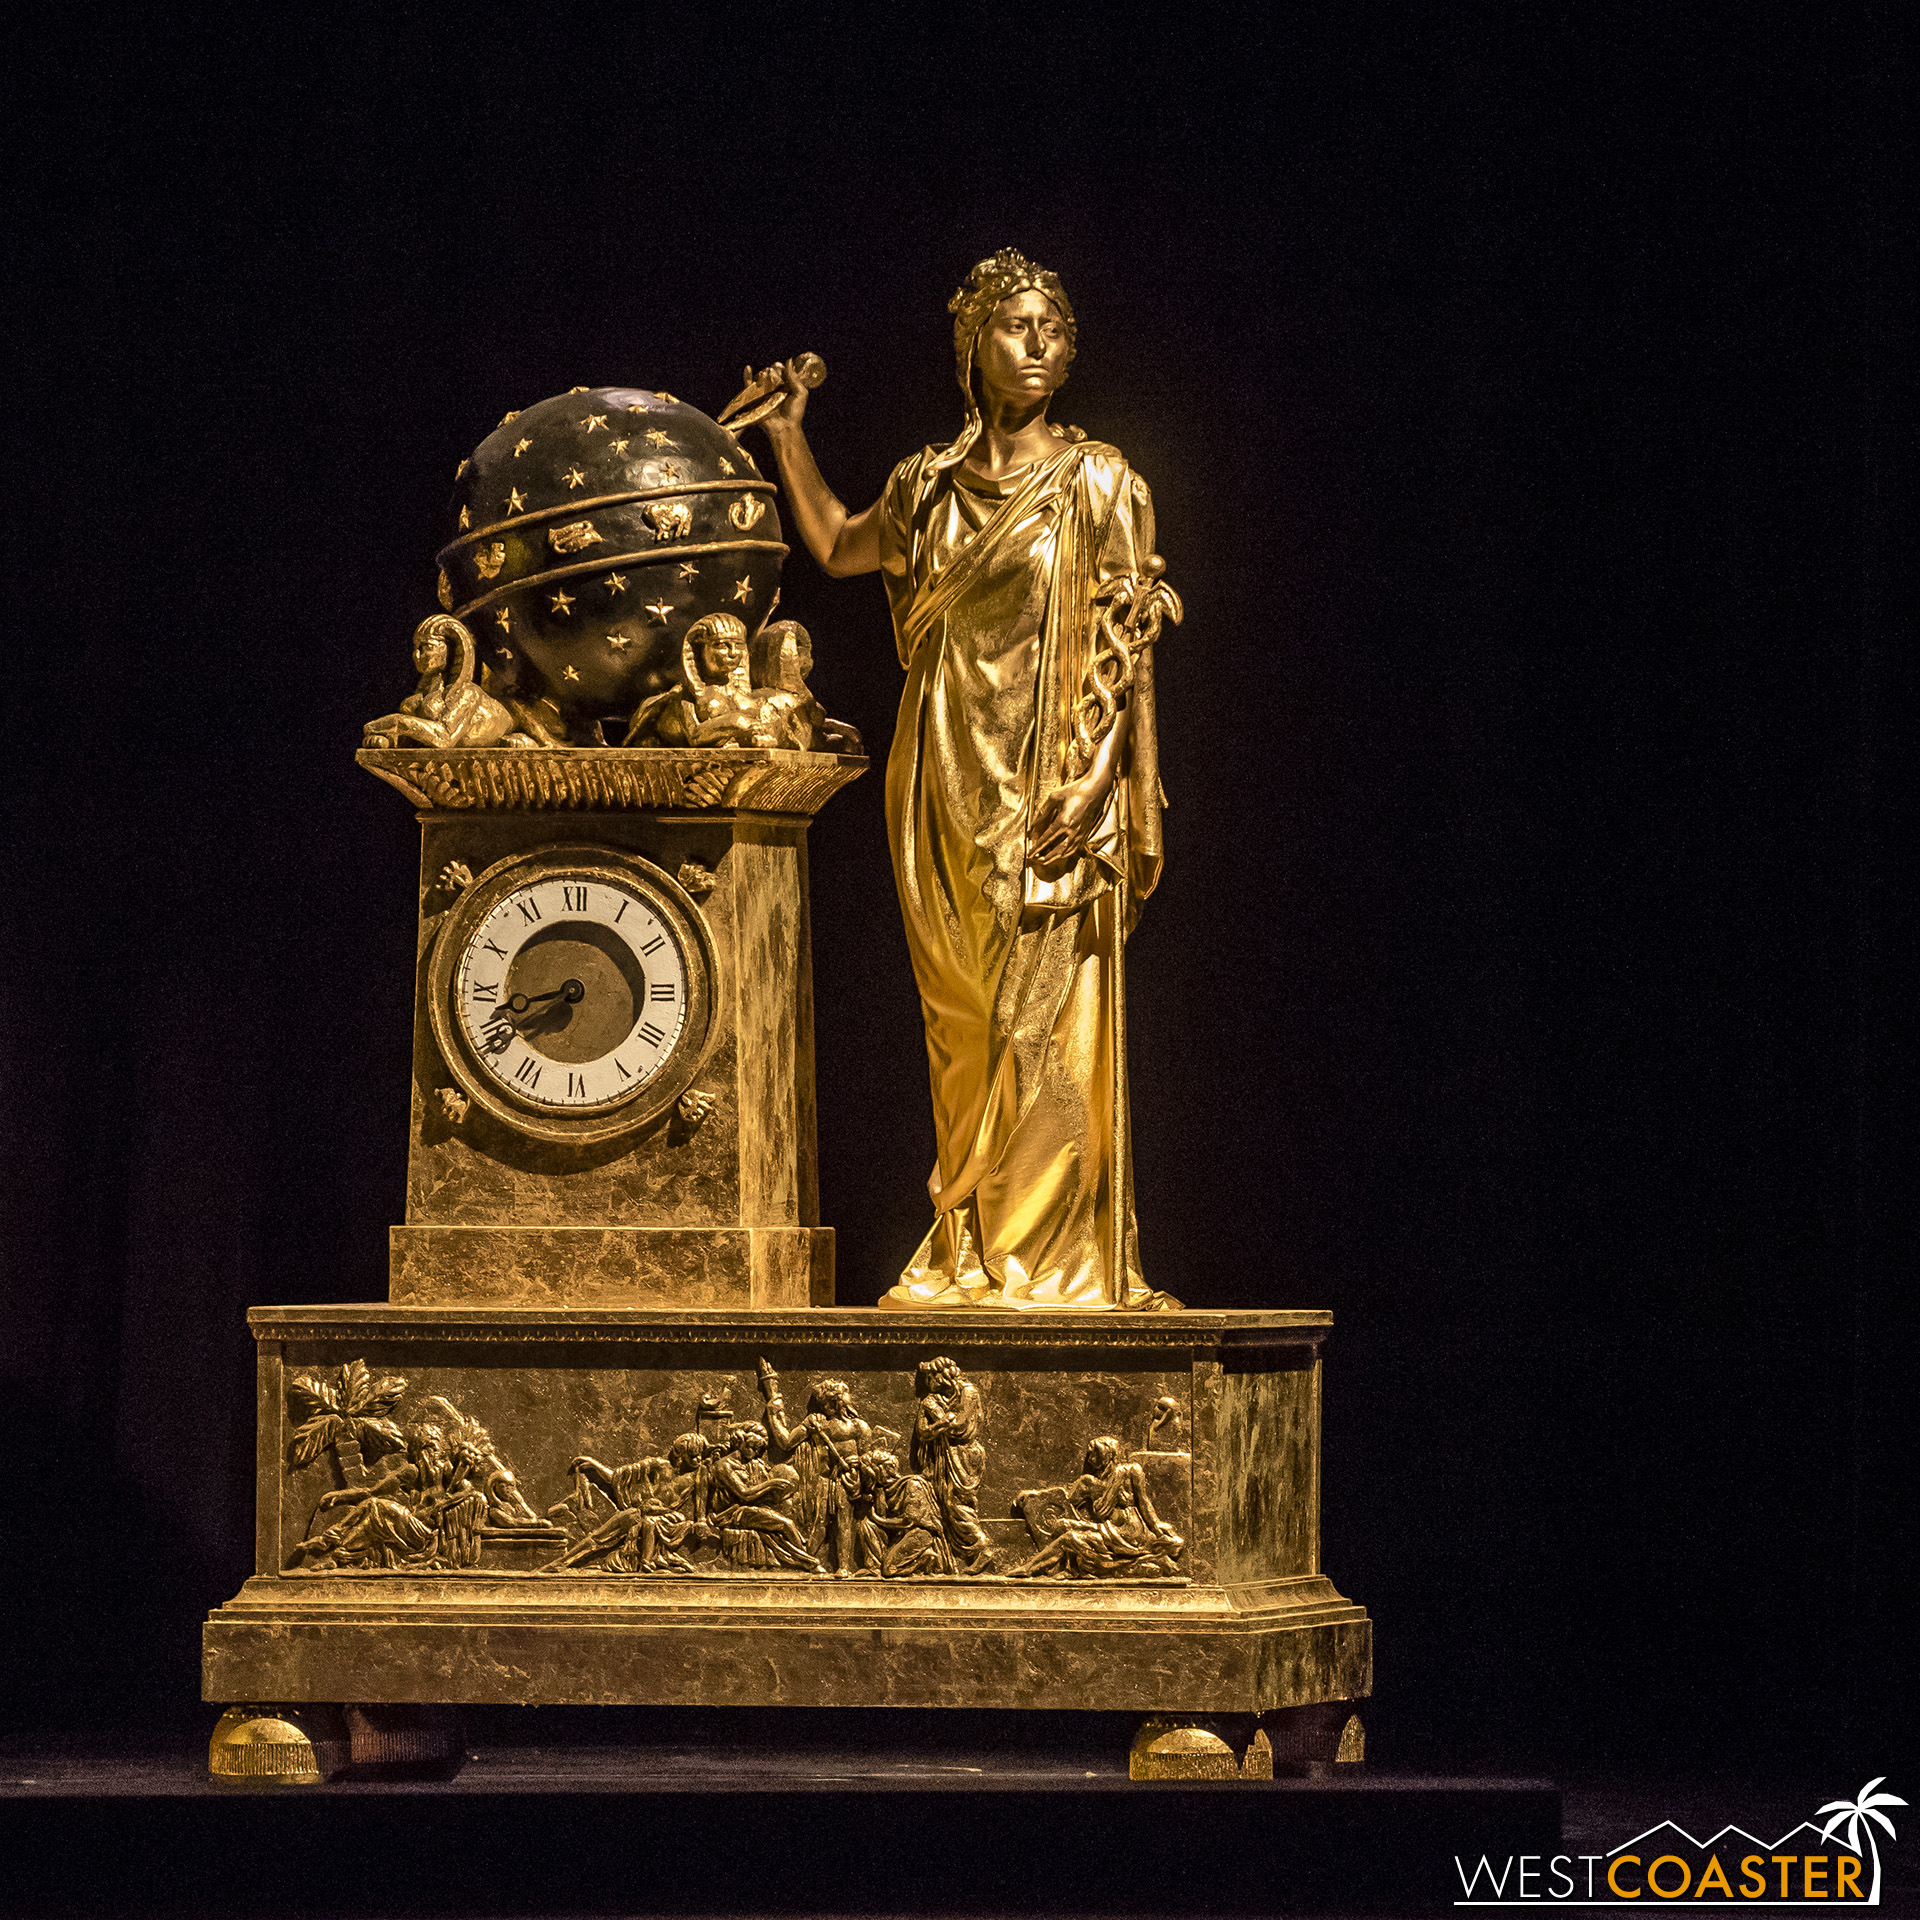 The sculptures are brought to life in vivid elegance.